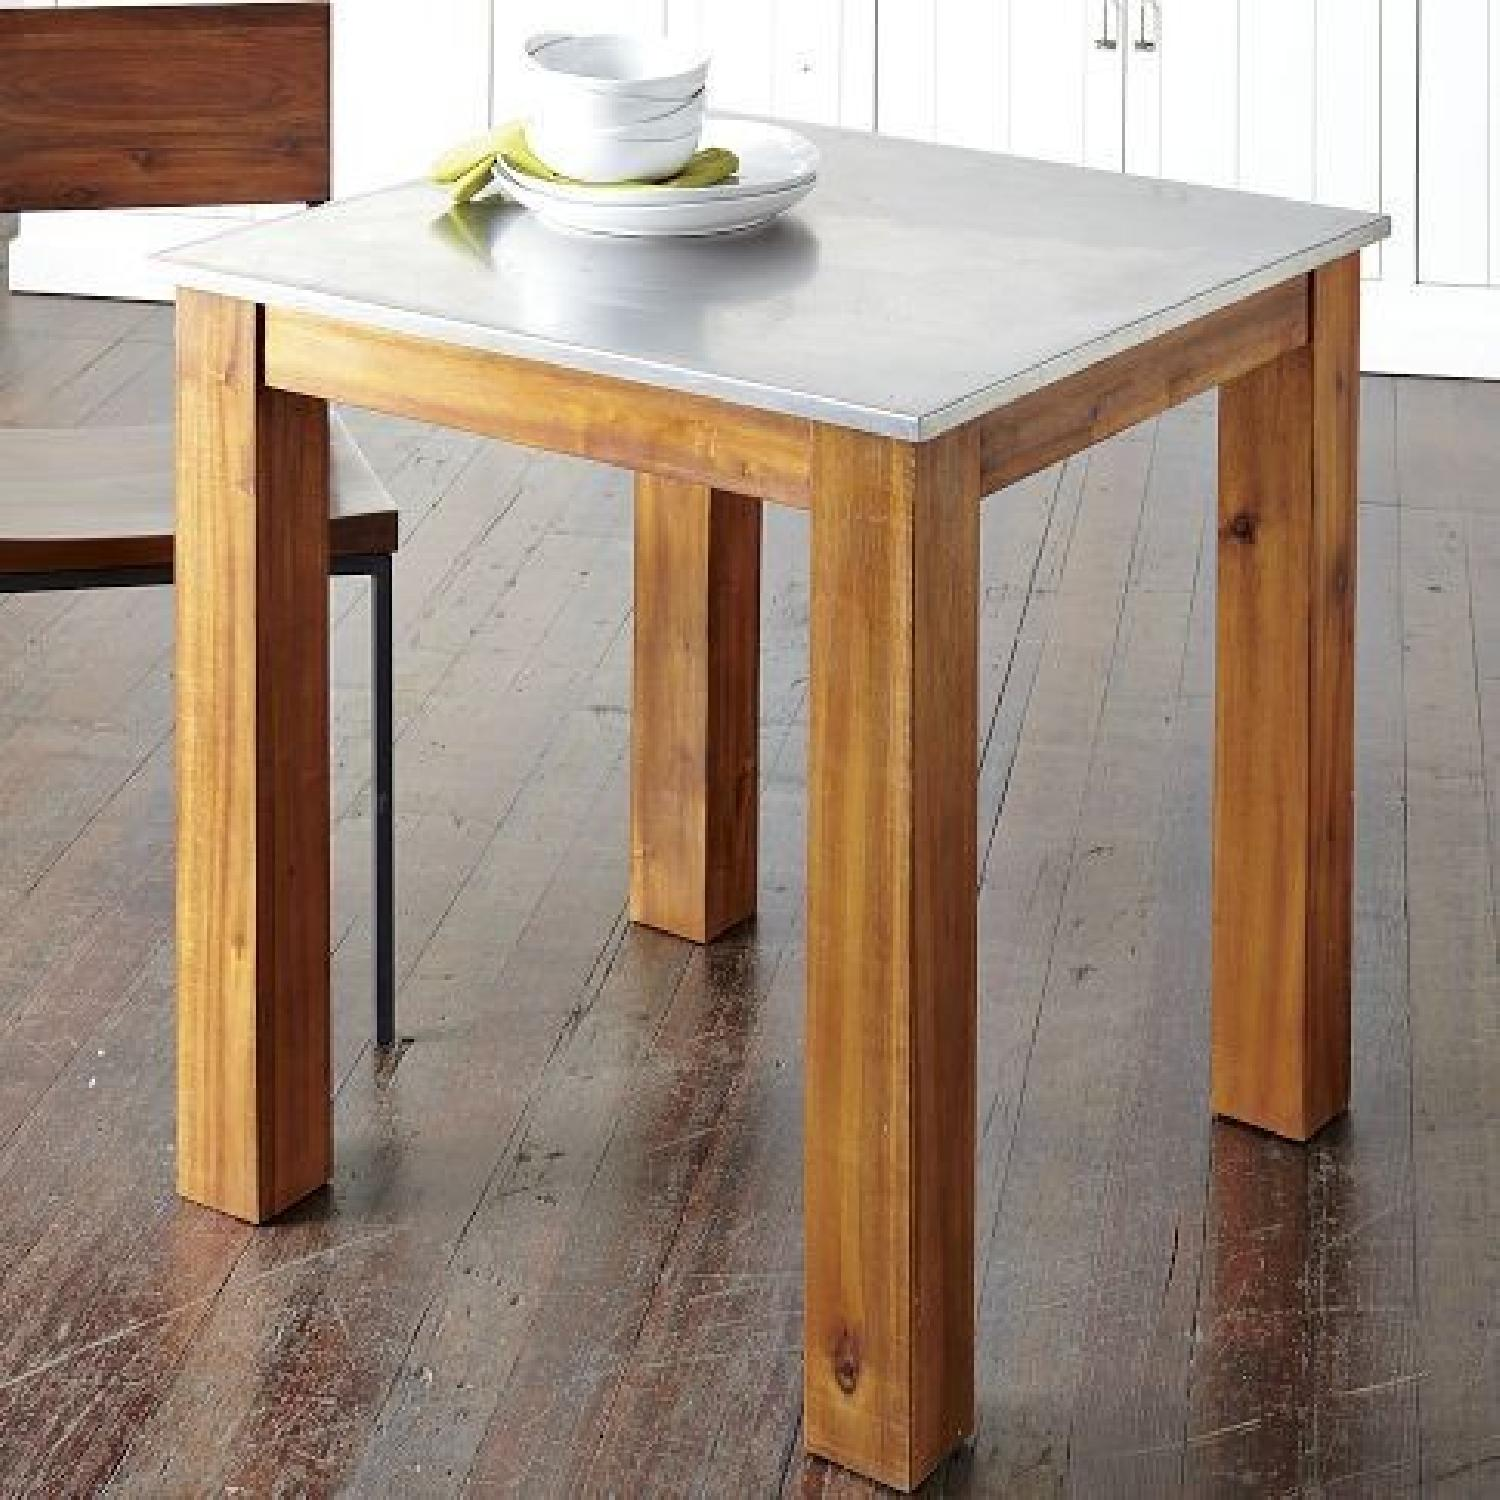 ... West Elm Square Wood Kitchen Table W/ Stainless Top 1